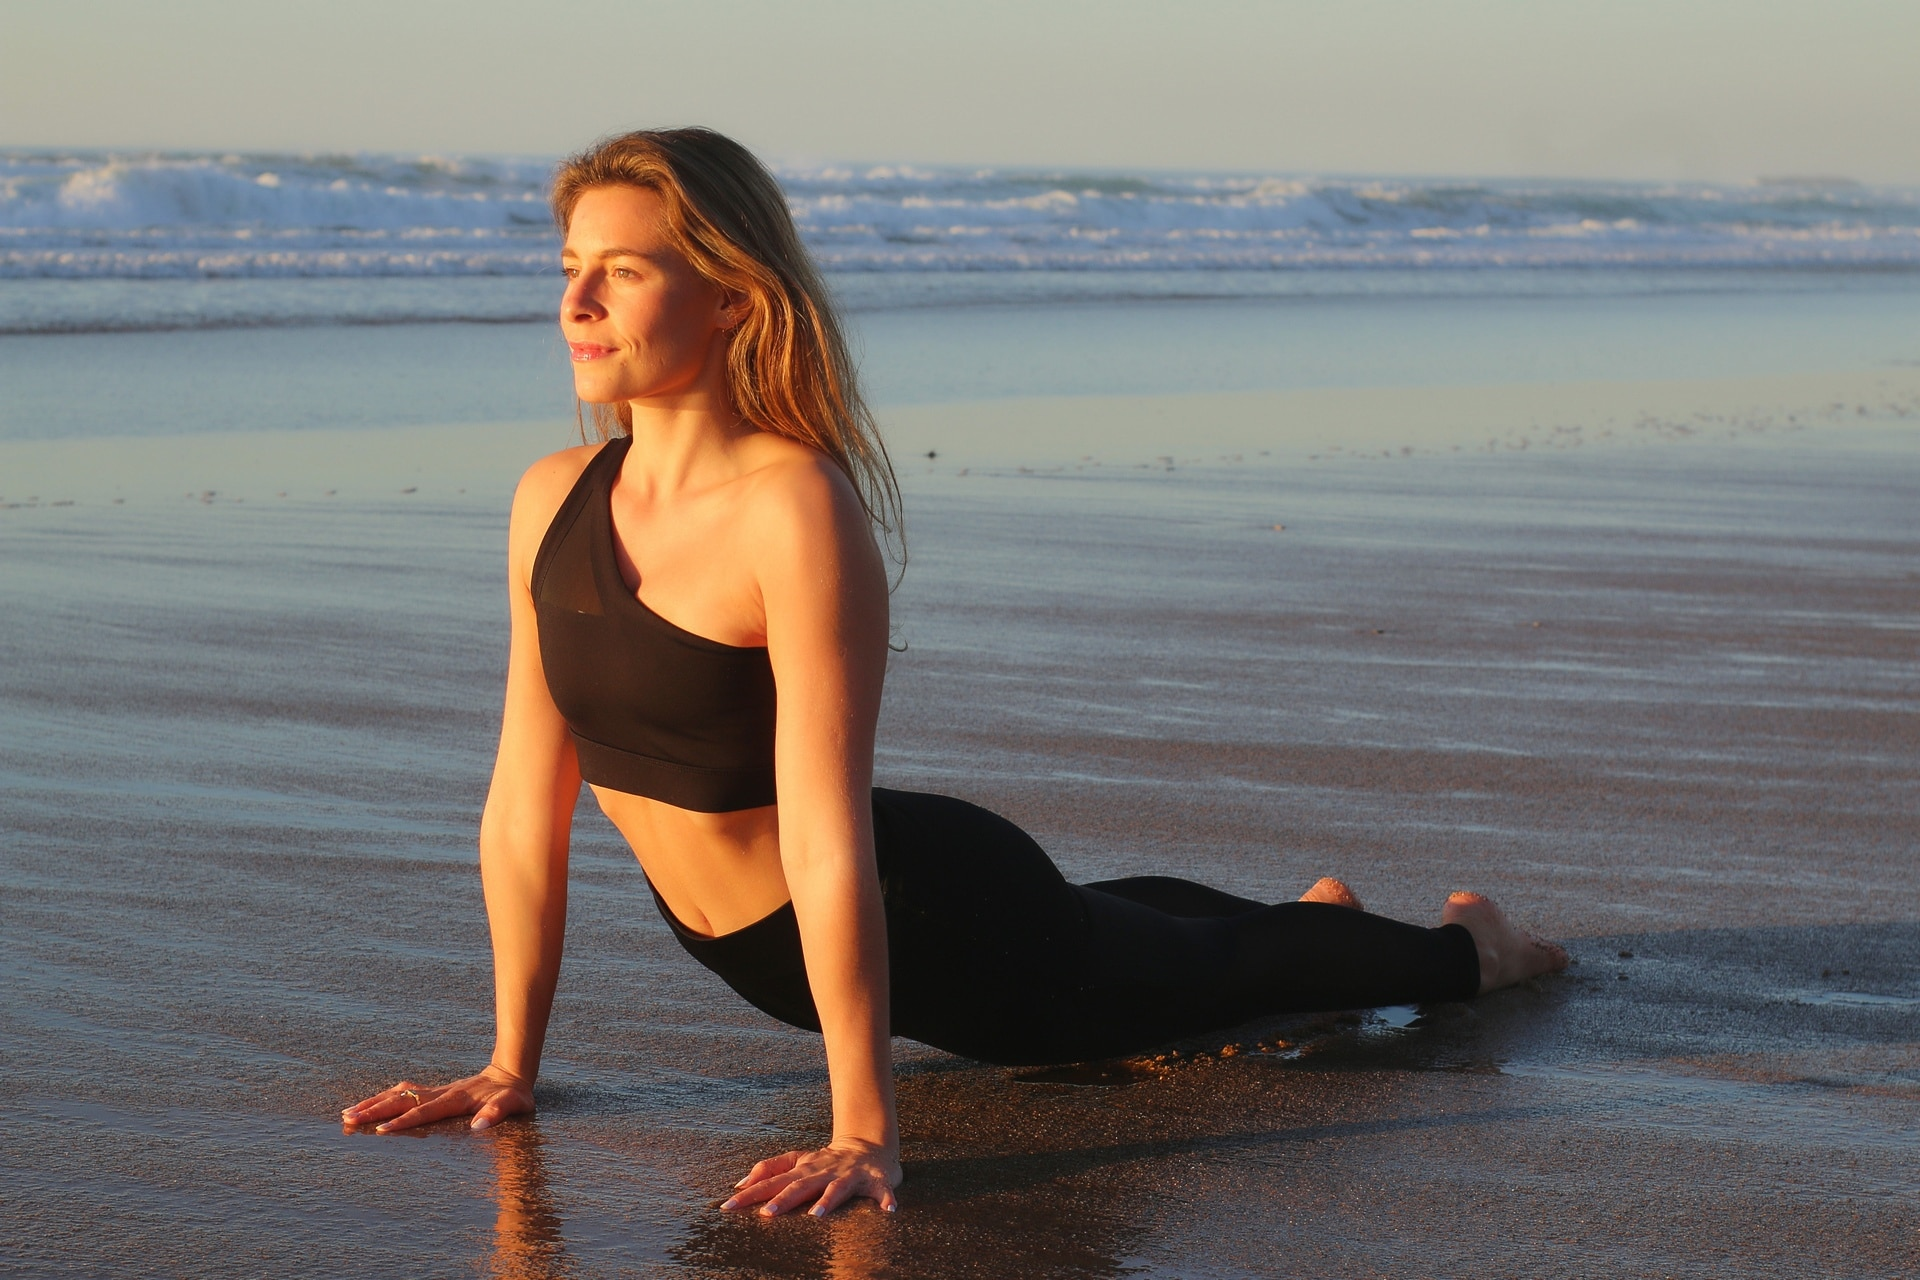 margaux-yoga-sunset-biarritz